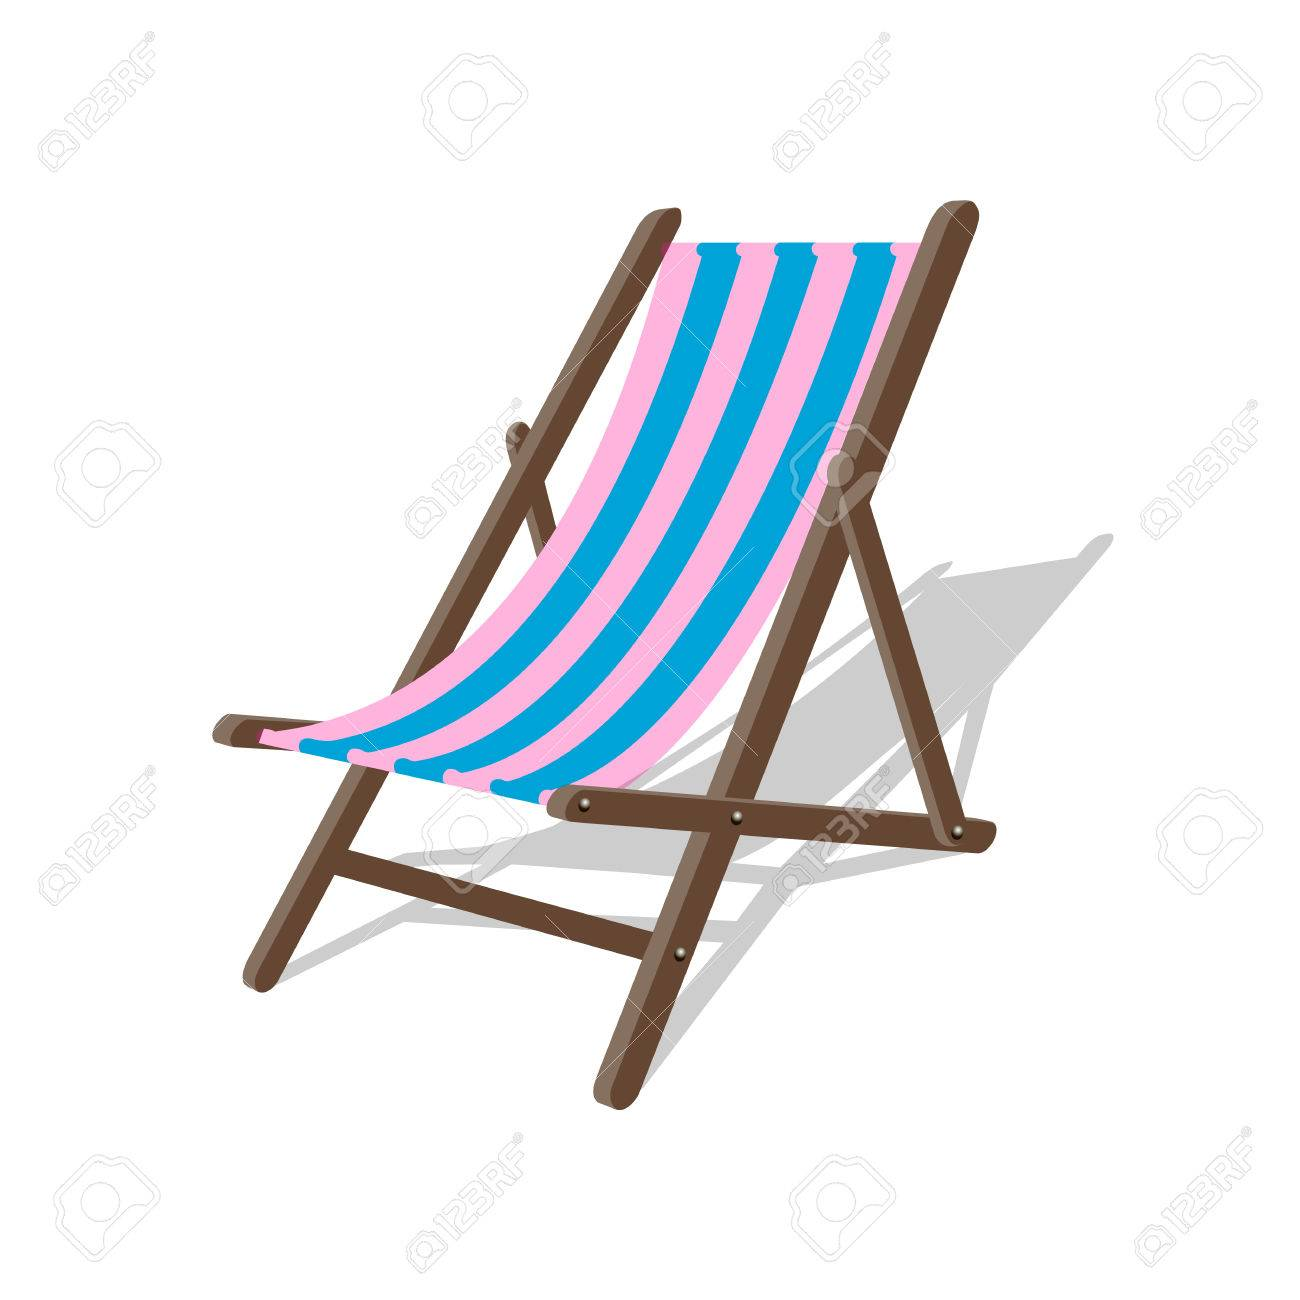 Vector   Vector Wood Beach Rest Chair. Relax Outdoor Striped Seat  Illustration. Lounge Concept Furniture. Vector Beach Sit. Resort Spa Relax  Chair.